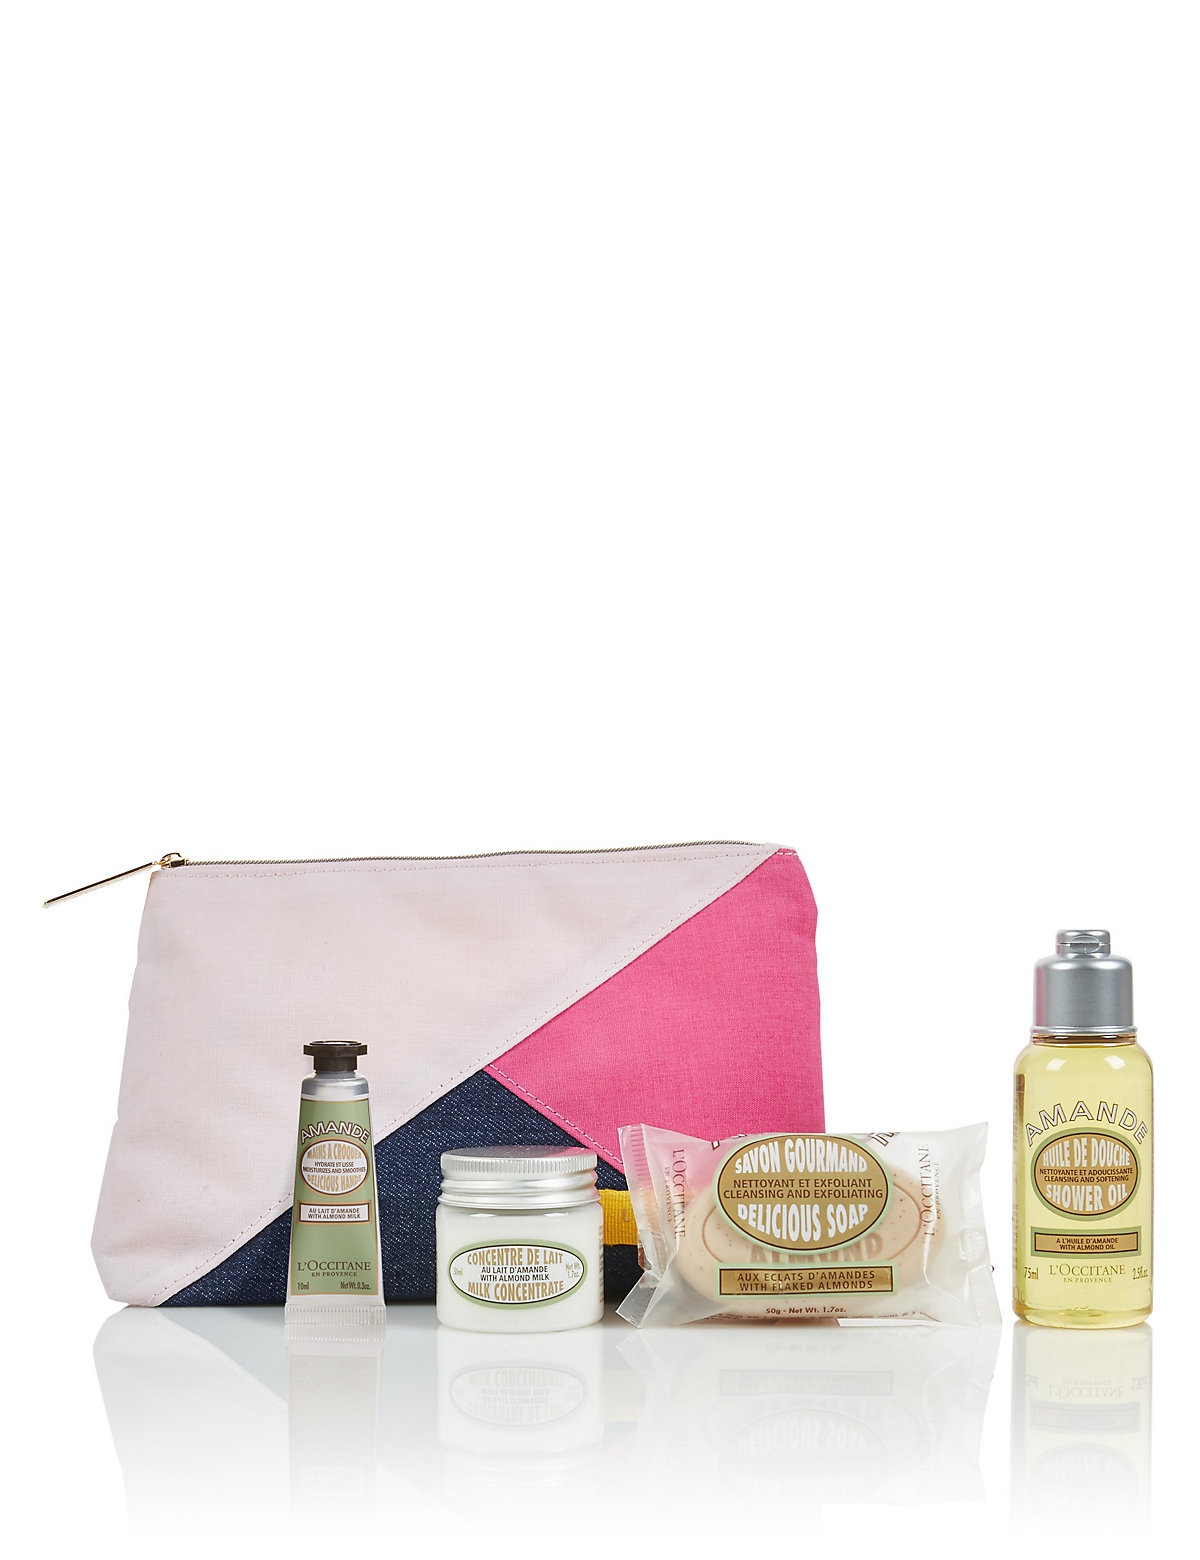 L'Occitane Almond Discovery Collection 2017